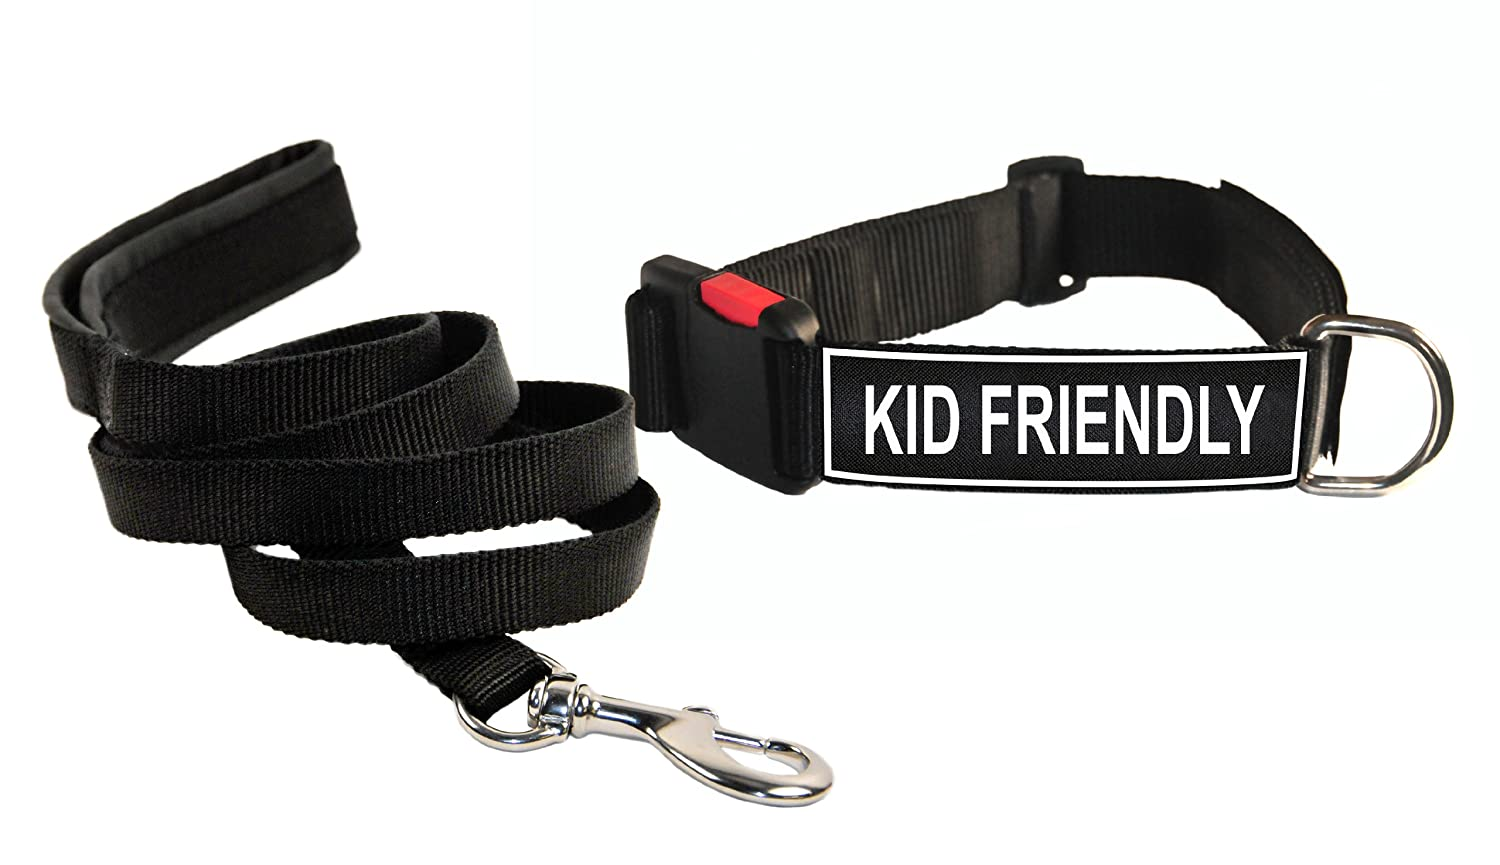 Dean & Tyler  Kid Friendly Small nero nero nero Patch Collare con Corrispondenza Imbottita Puppy guinzaglio 0d0c12